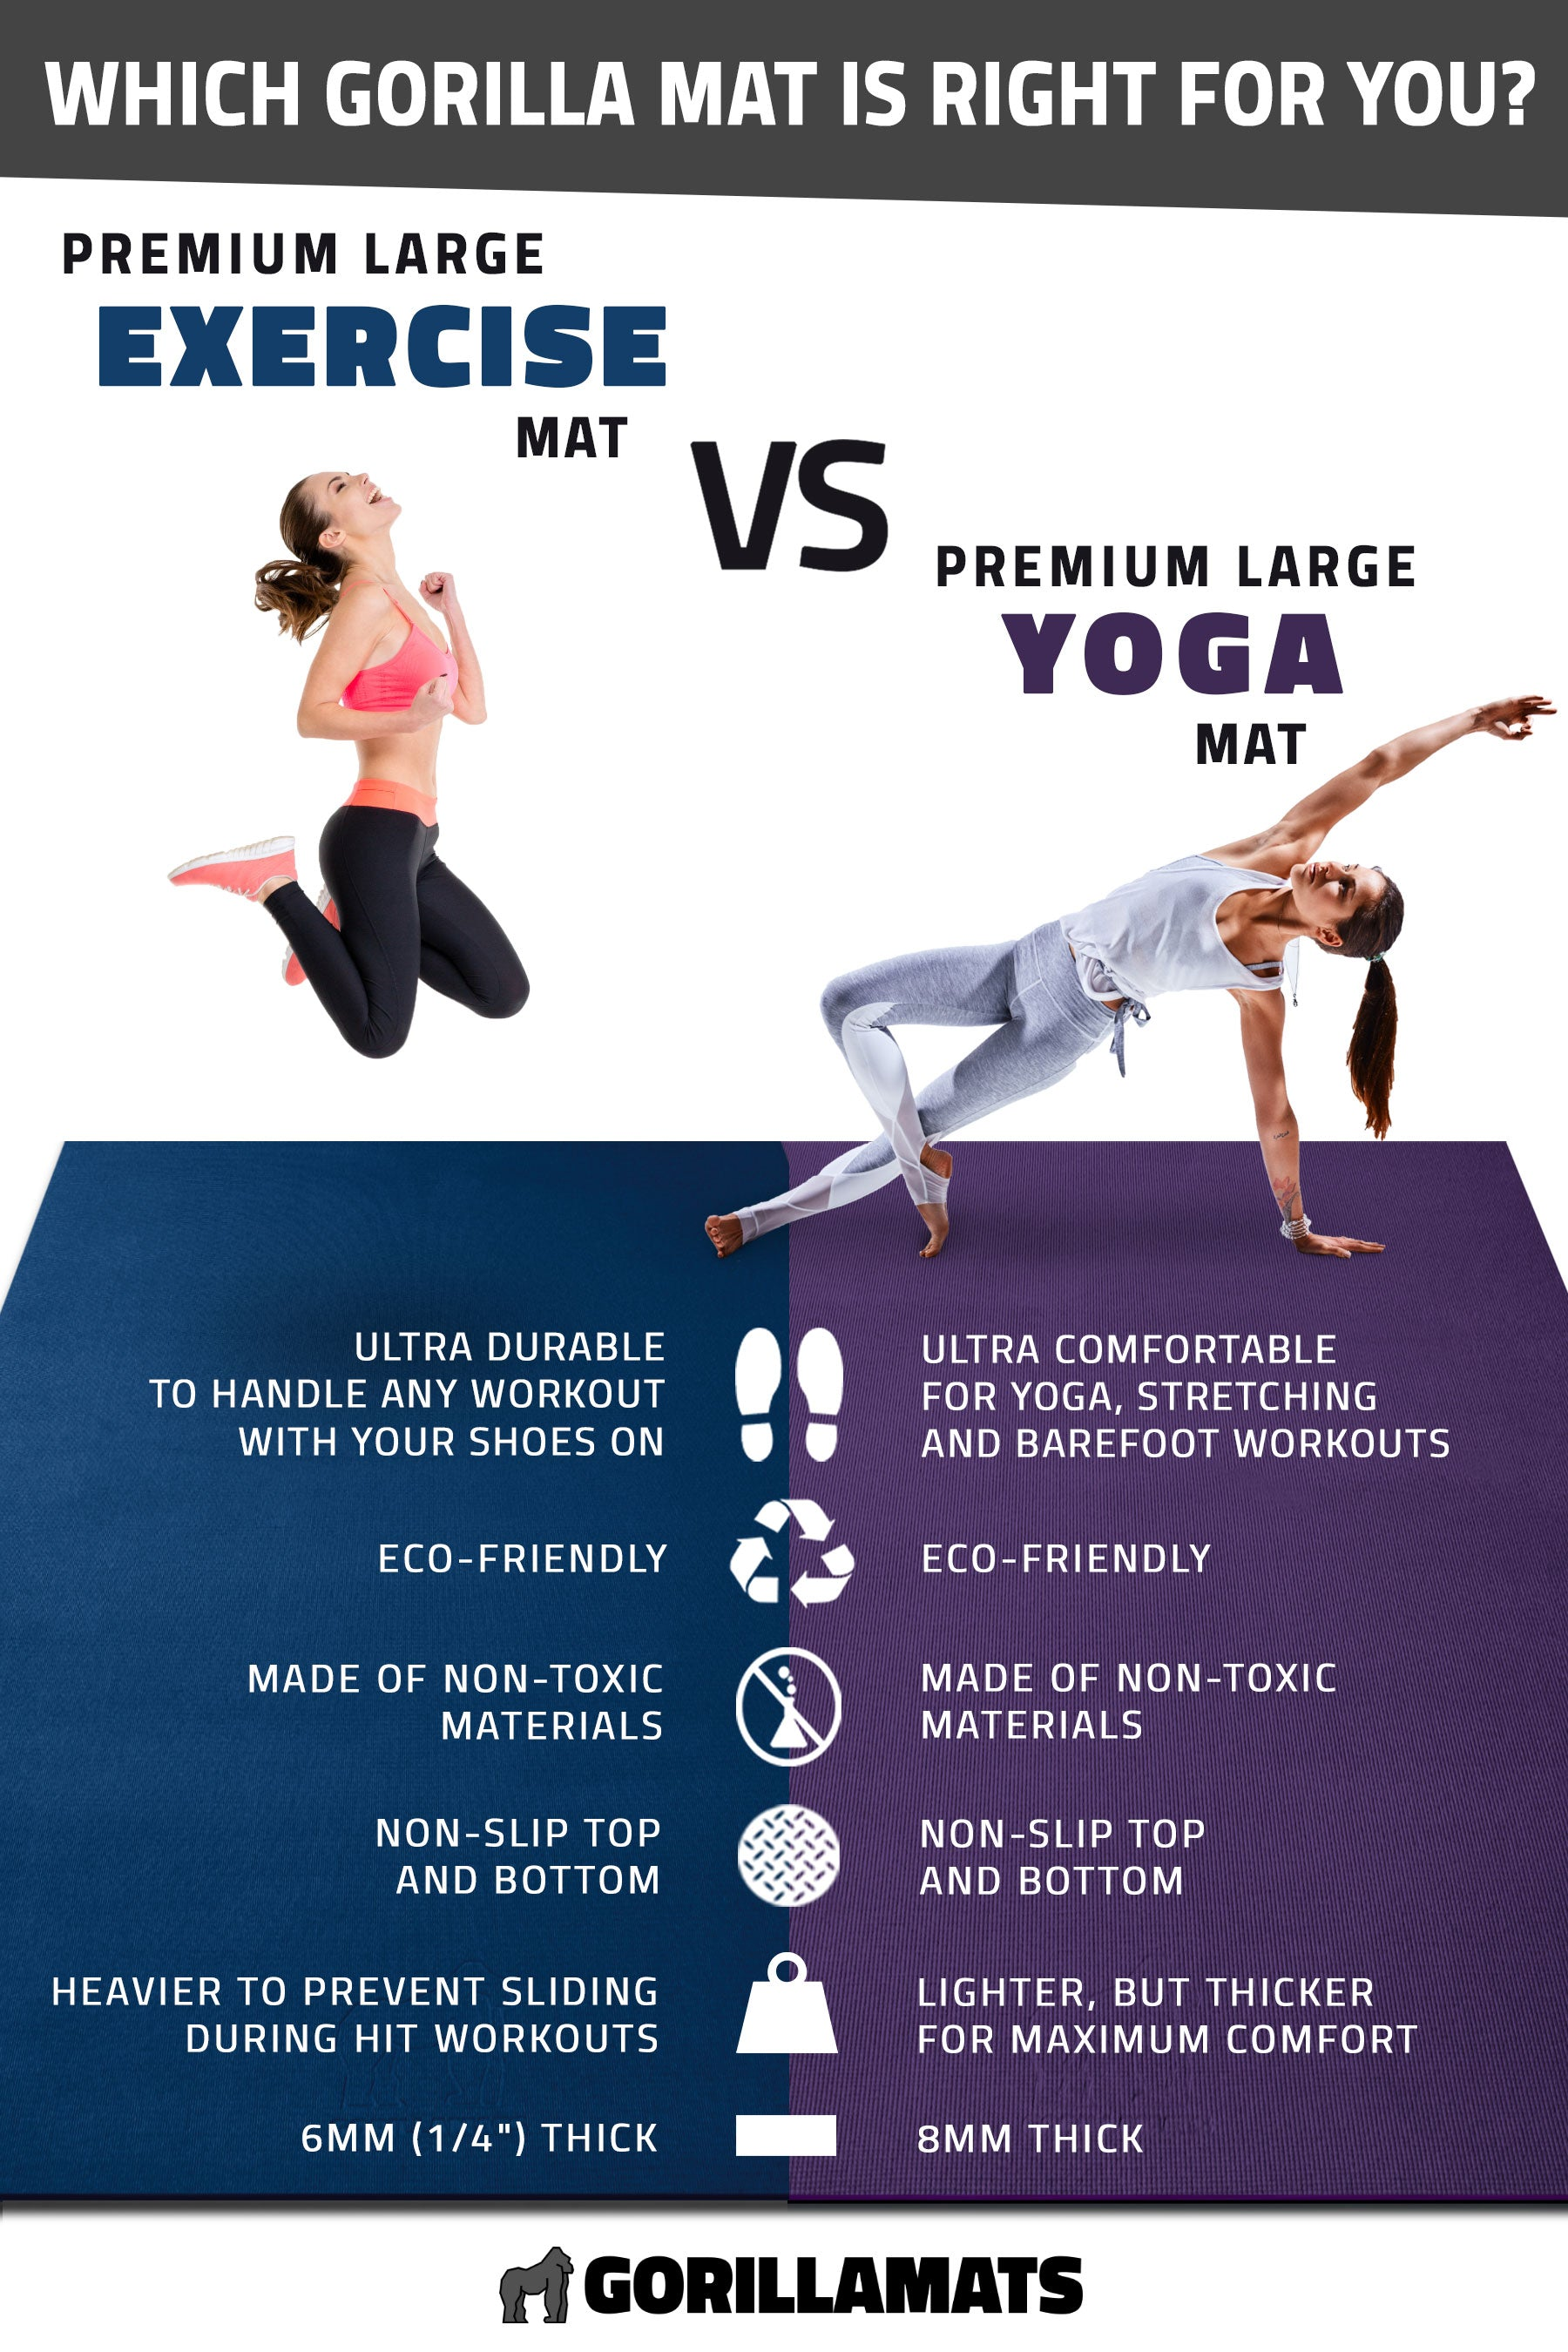 Exercise Mat vs Yoga Mat: Which Gorilla Mat is Right for You